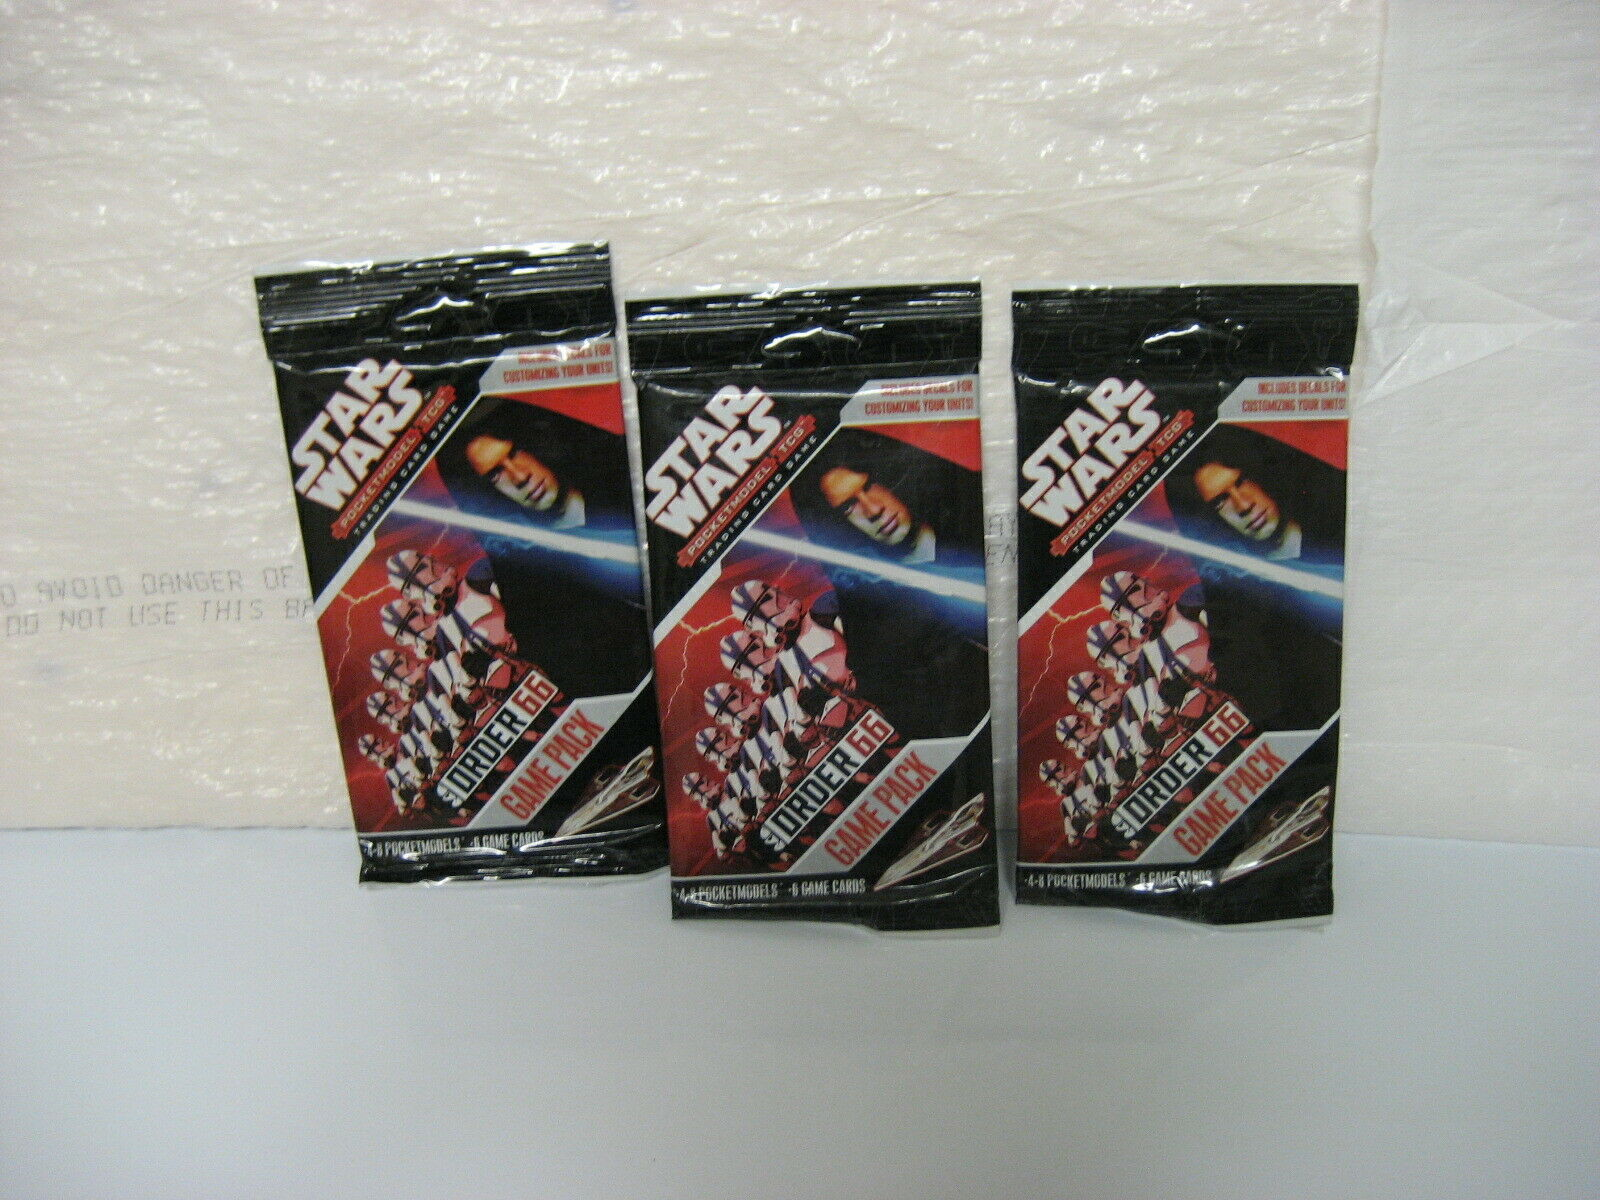 Primary image for STAR WARS ORDER 66 pocketmodel tcg game packs set of 3, new/sealed